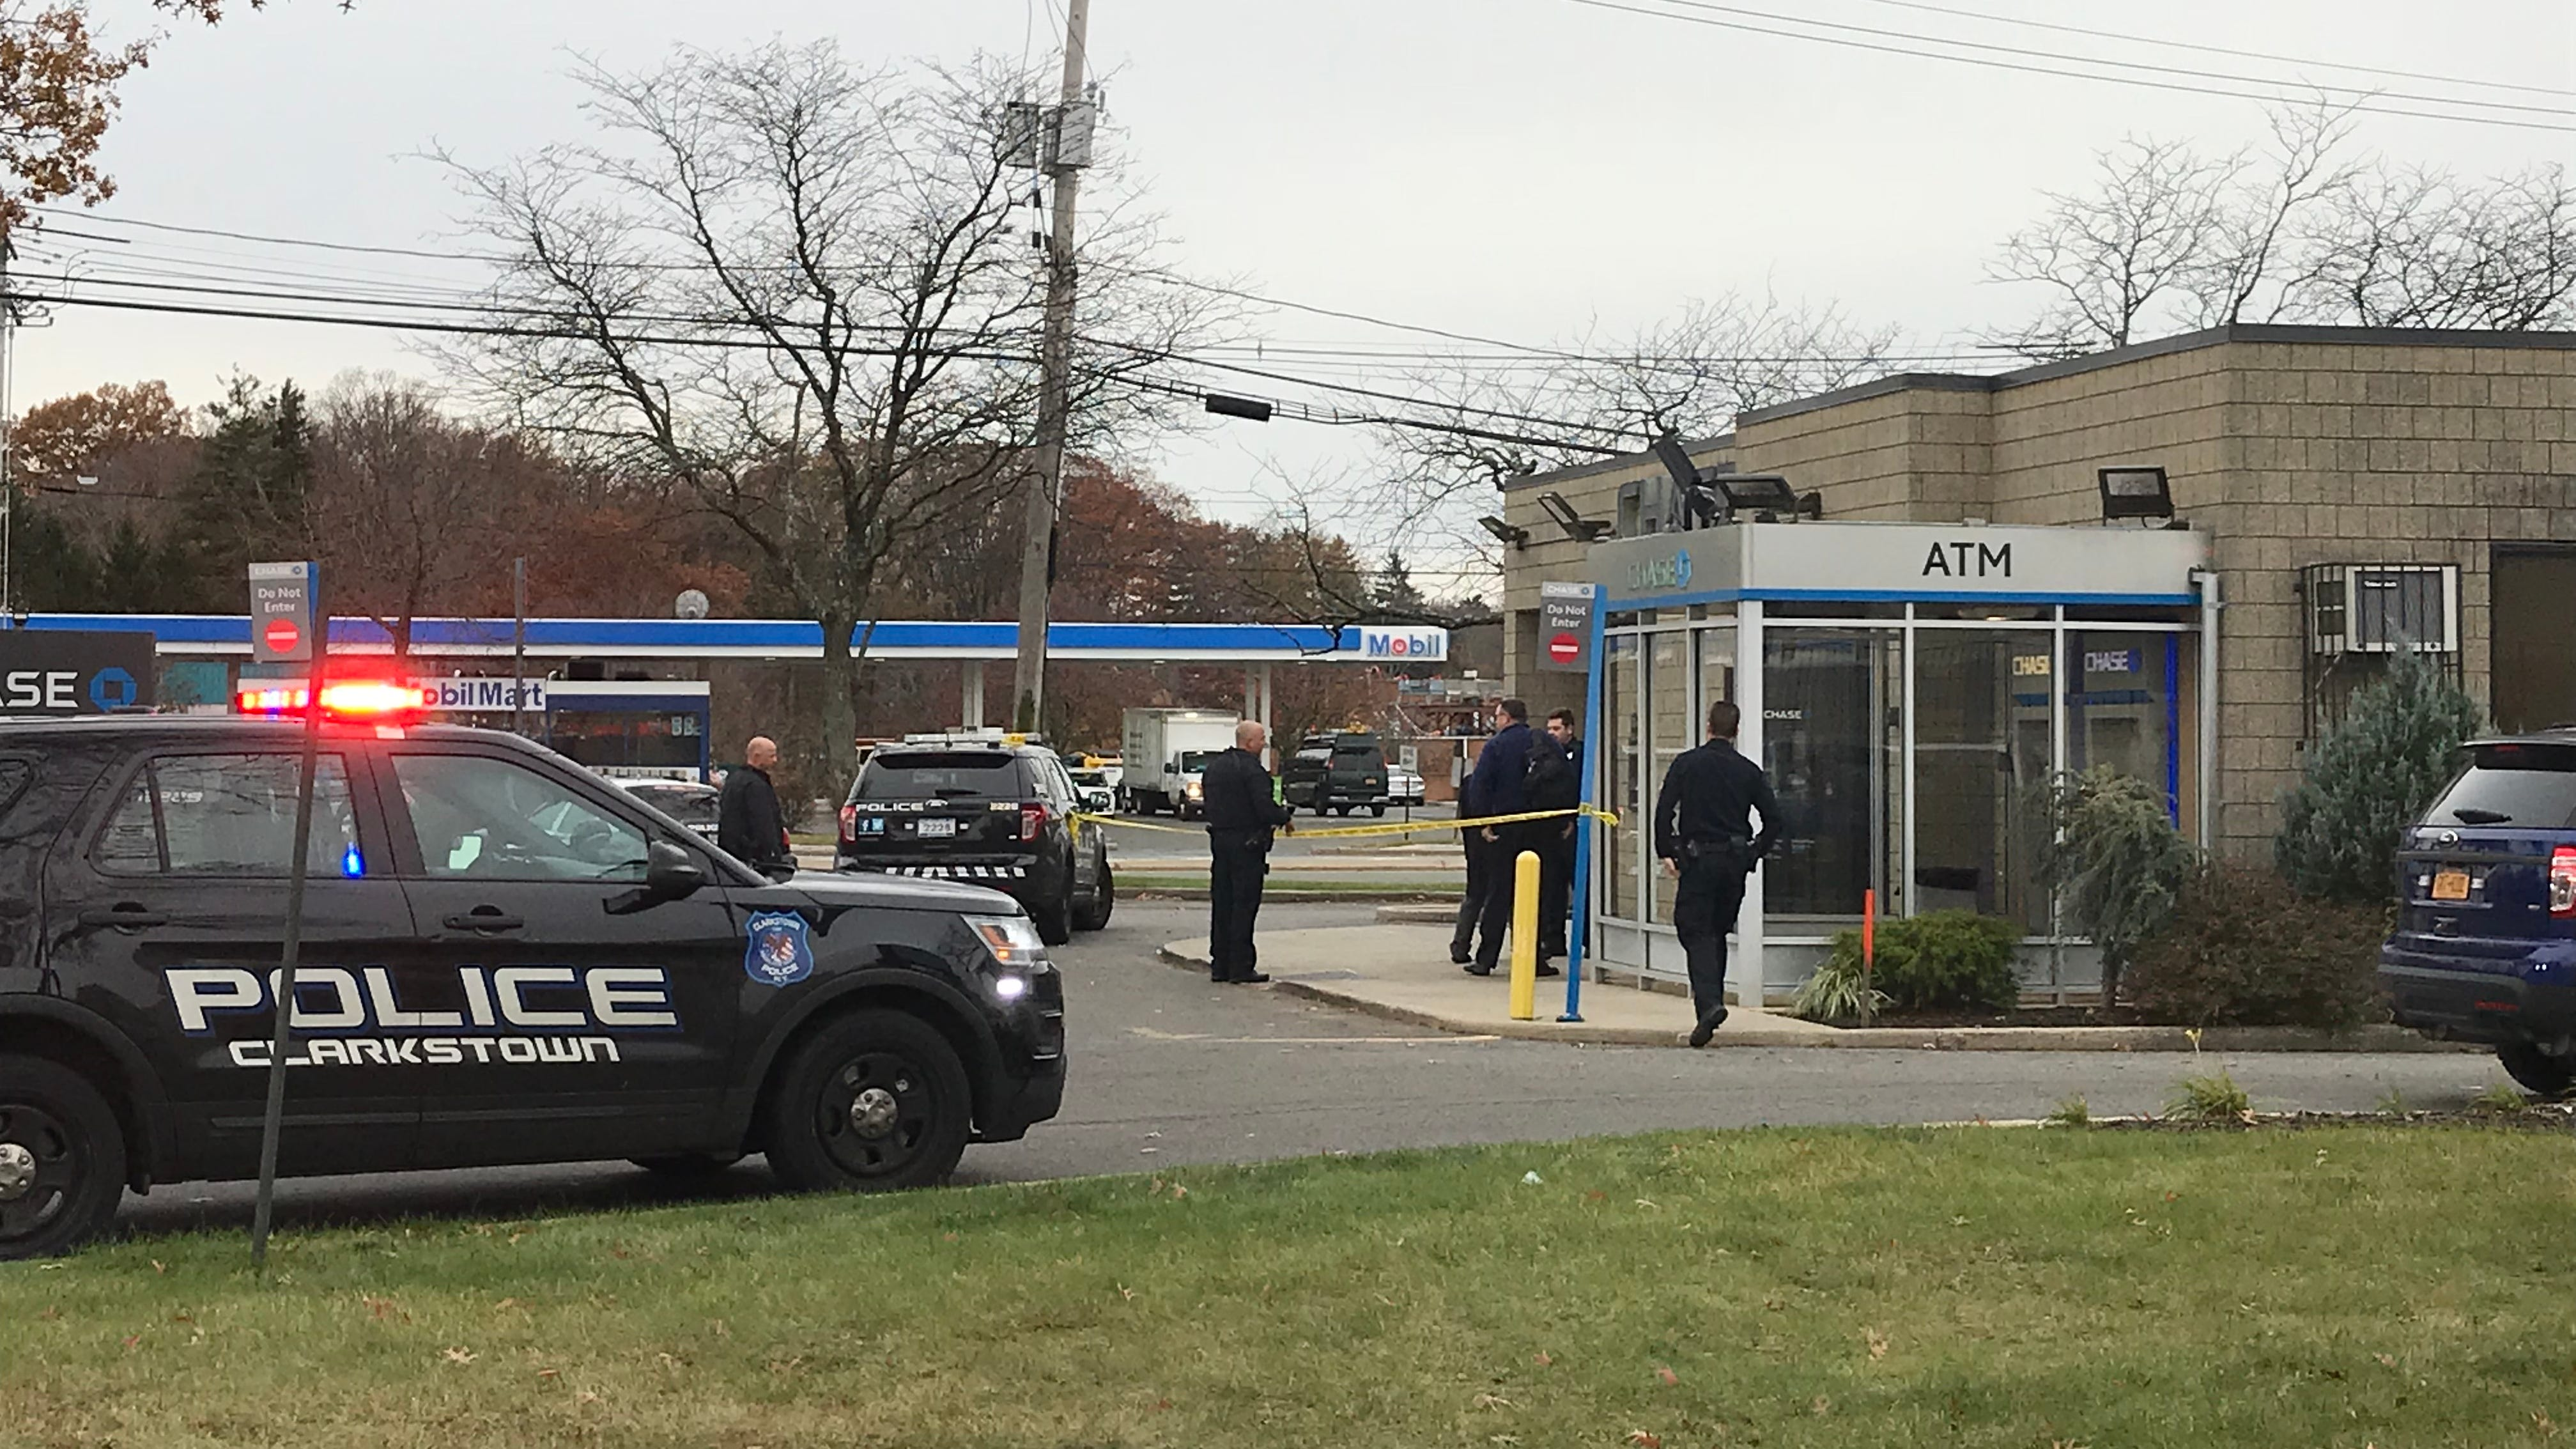 Clarkstown police investigate a possible robbery...